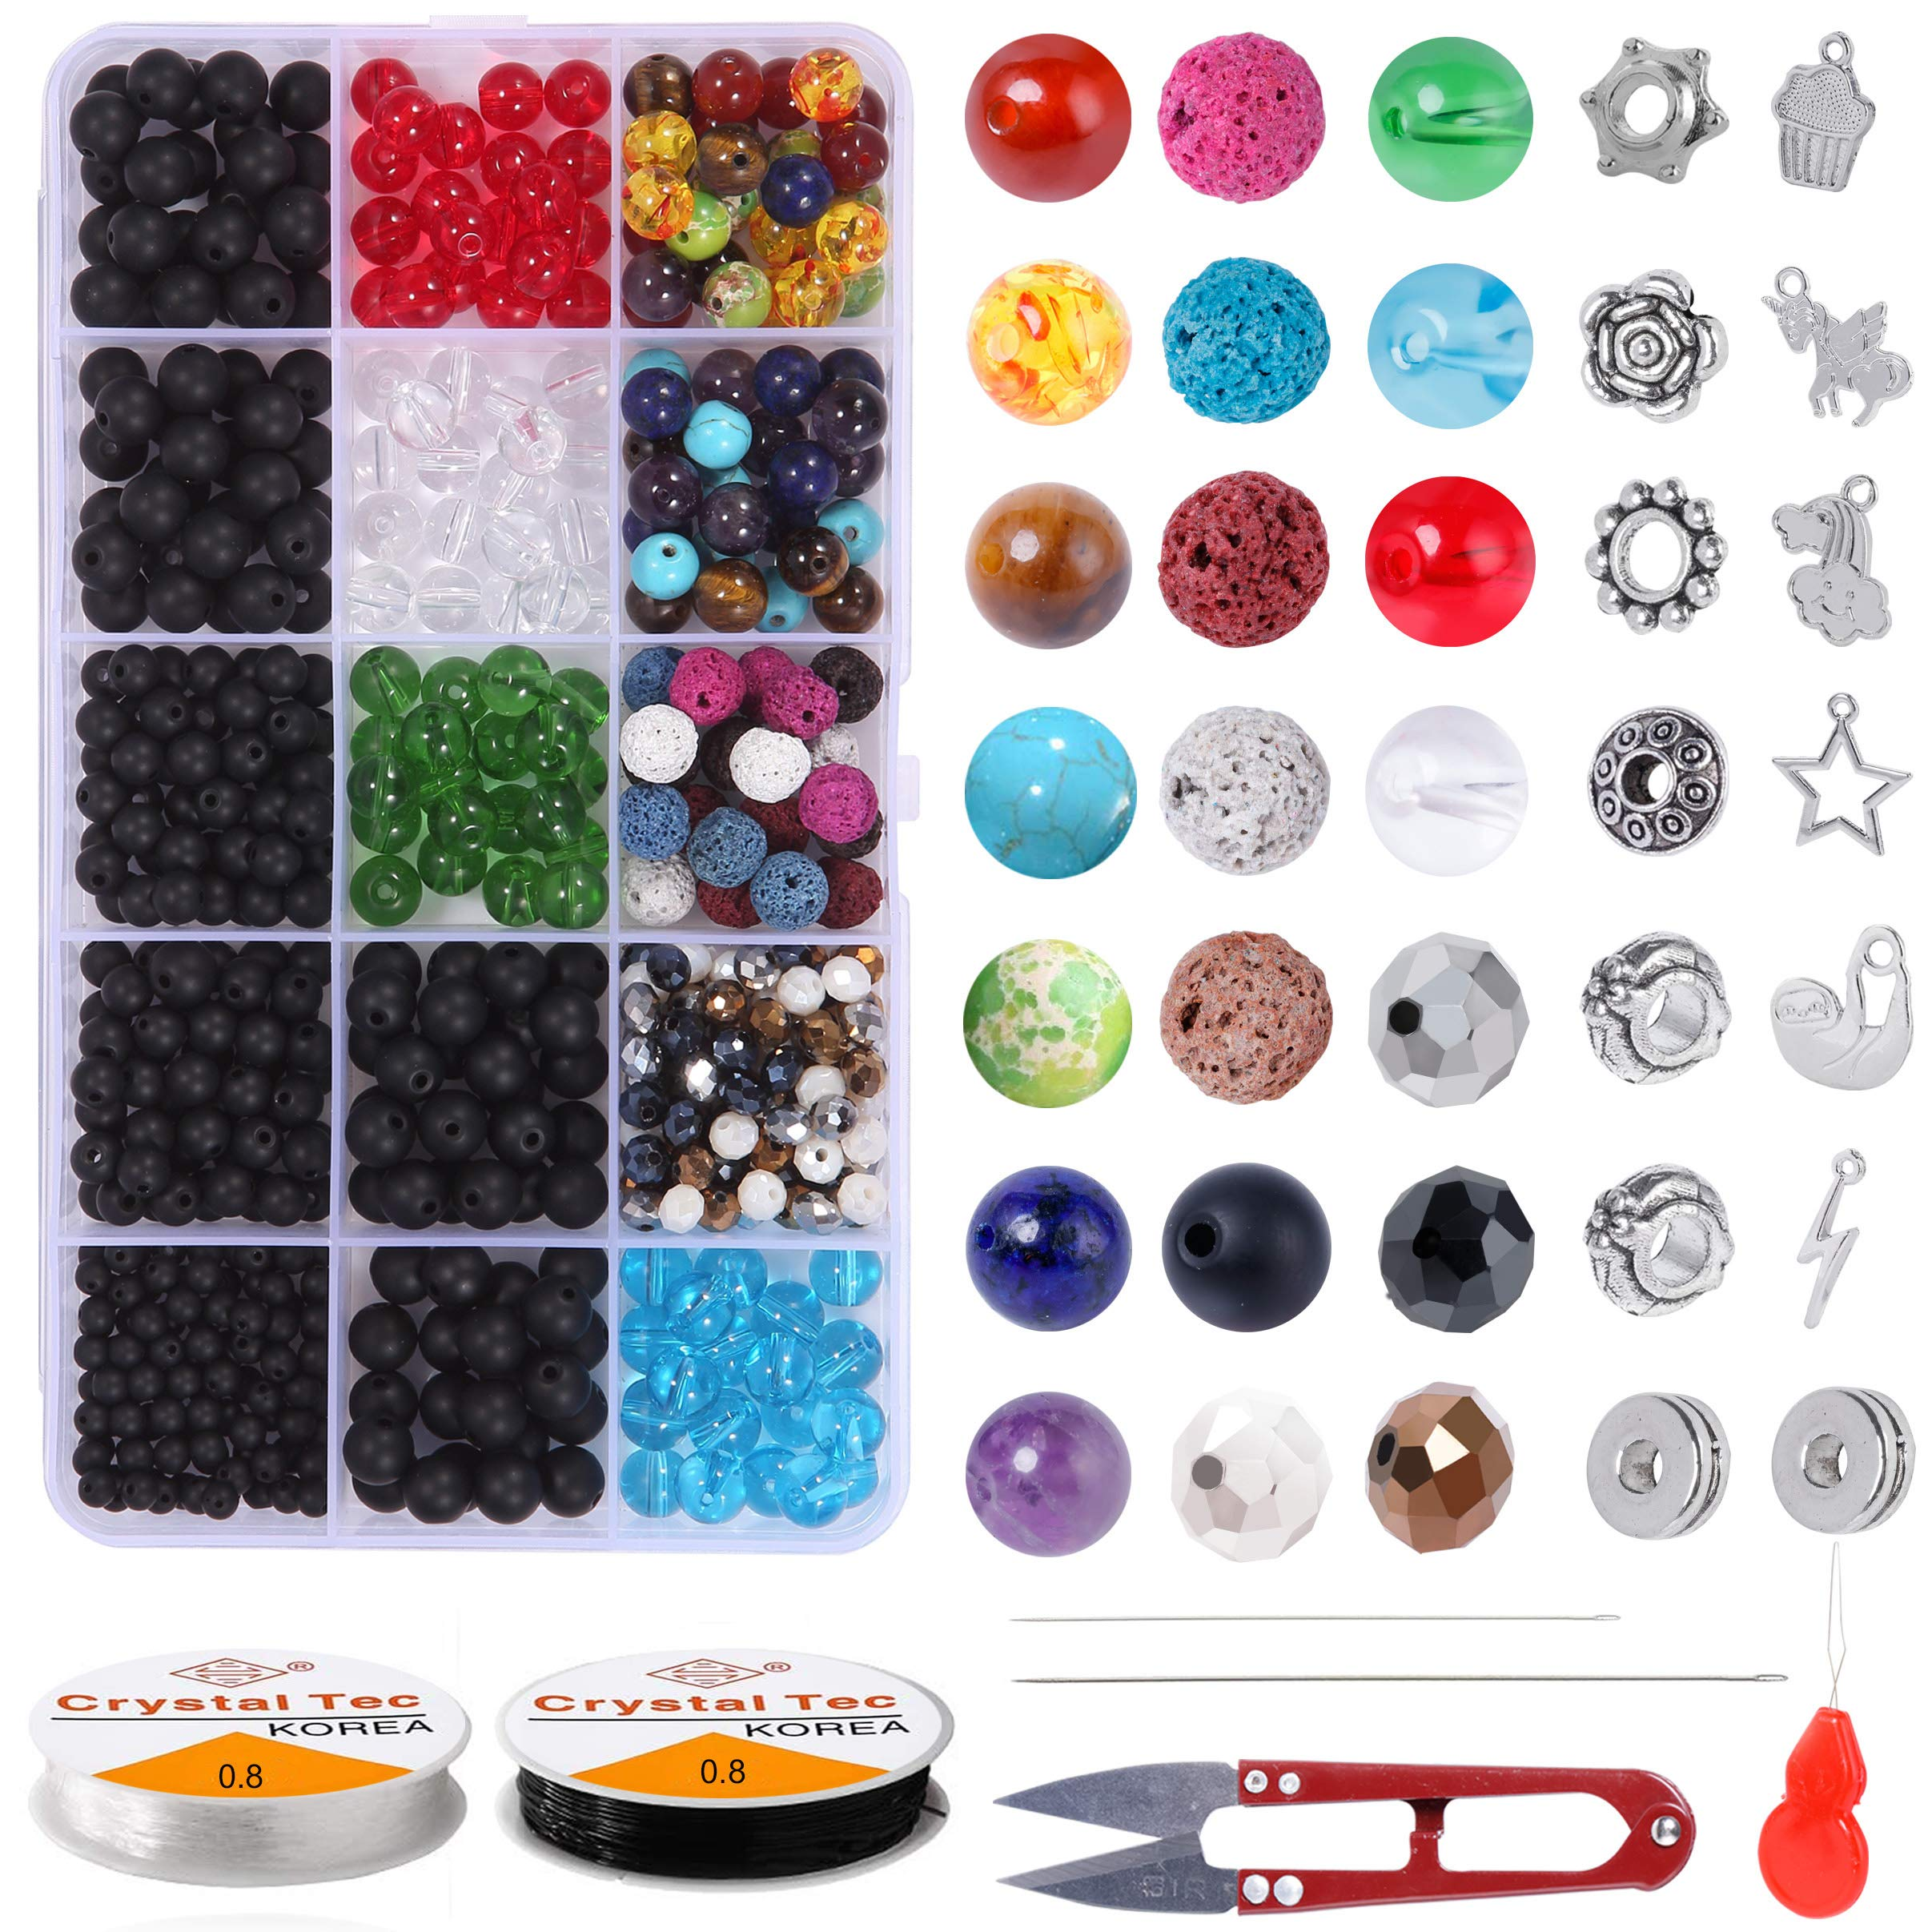 Bracelet Making Kit Beads Bulk - 662PCS Black Agate Bead Bulk 100% Natural Chakra Bead Color Briolette Bead Color Lava Rock Bead Glass Bead with 2 Roll Crystal String Bracelet Charm for Jewelry Making by YUGDRUZY